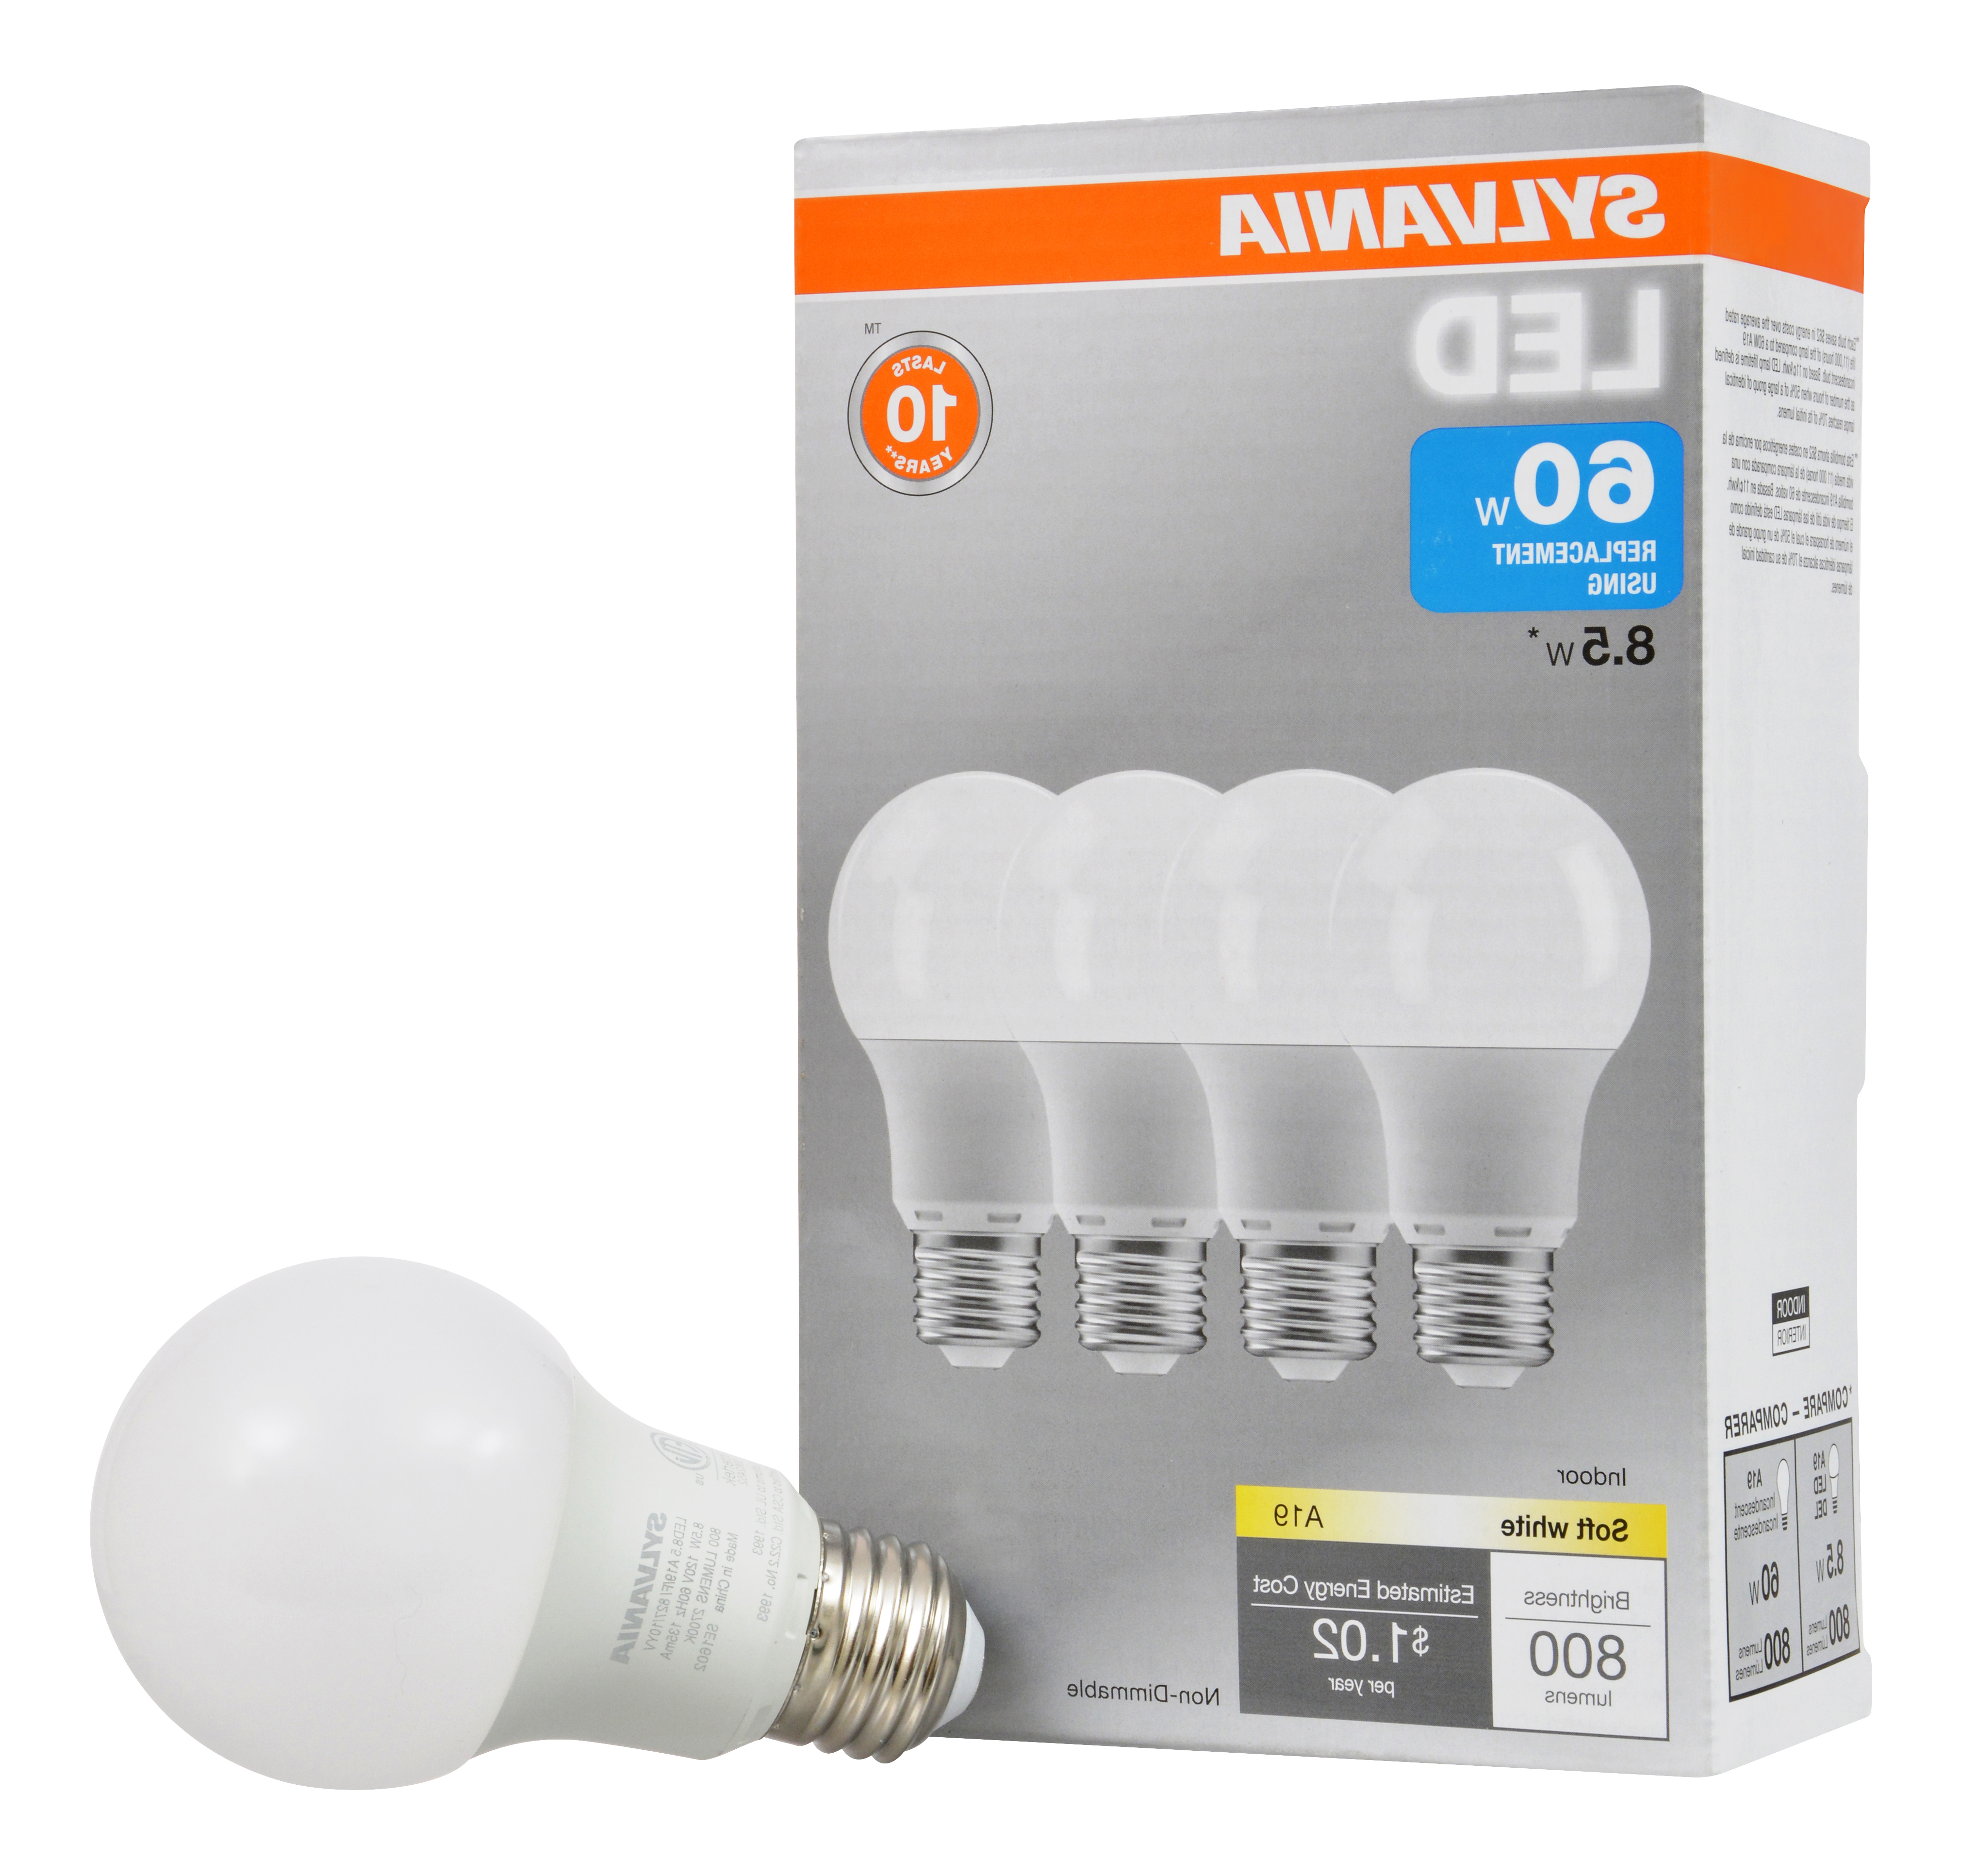 Sylvania Led Light Bulbs, (View 19 of 20)